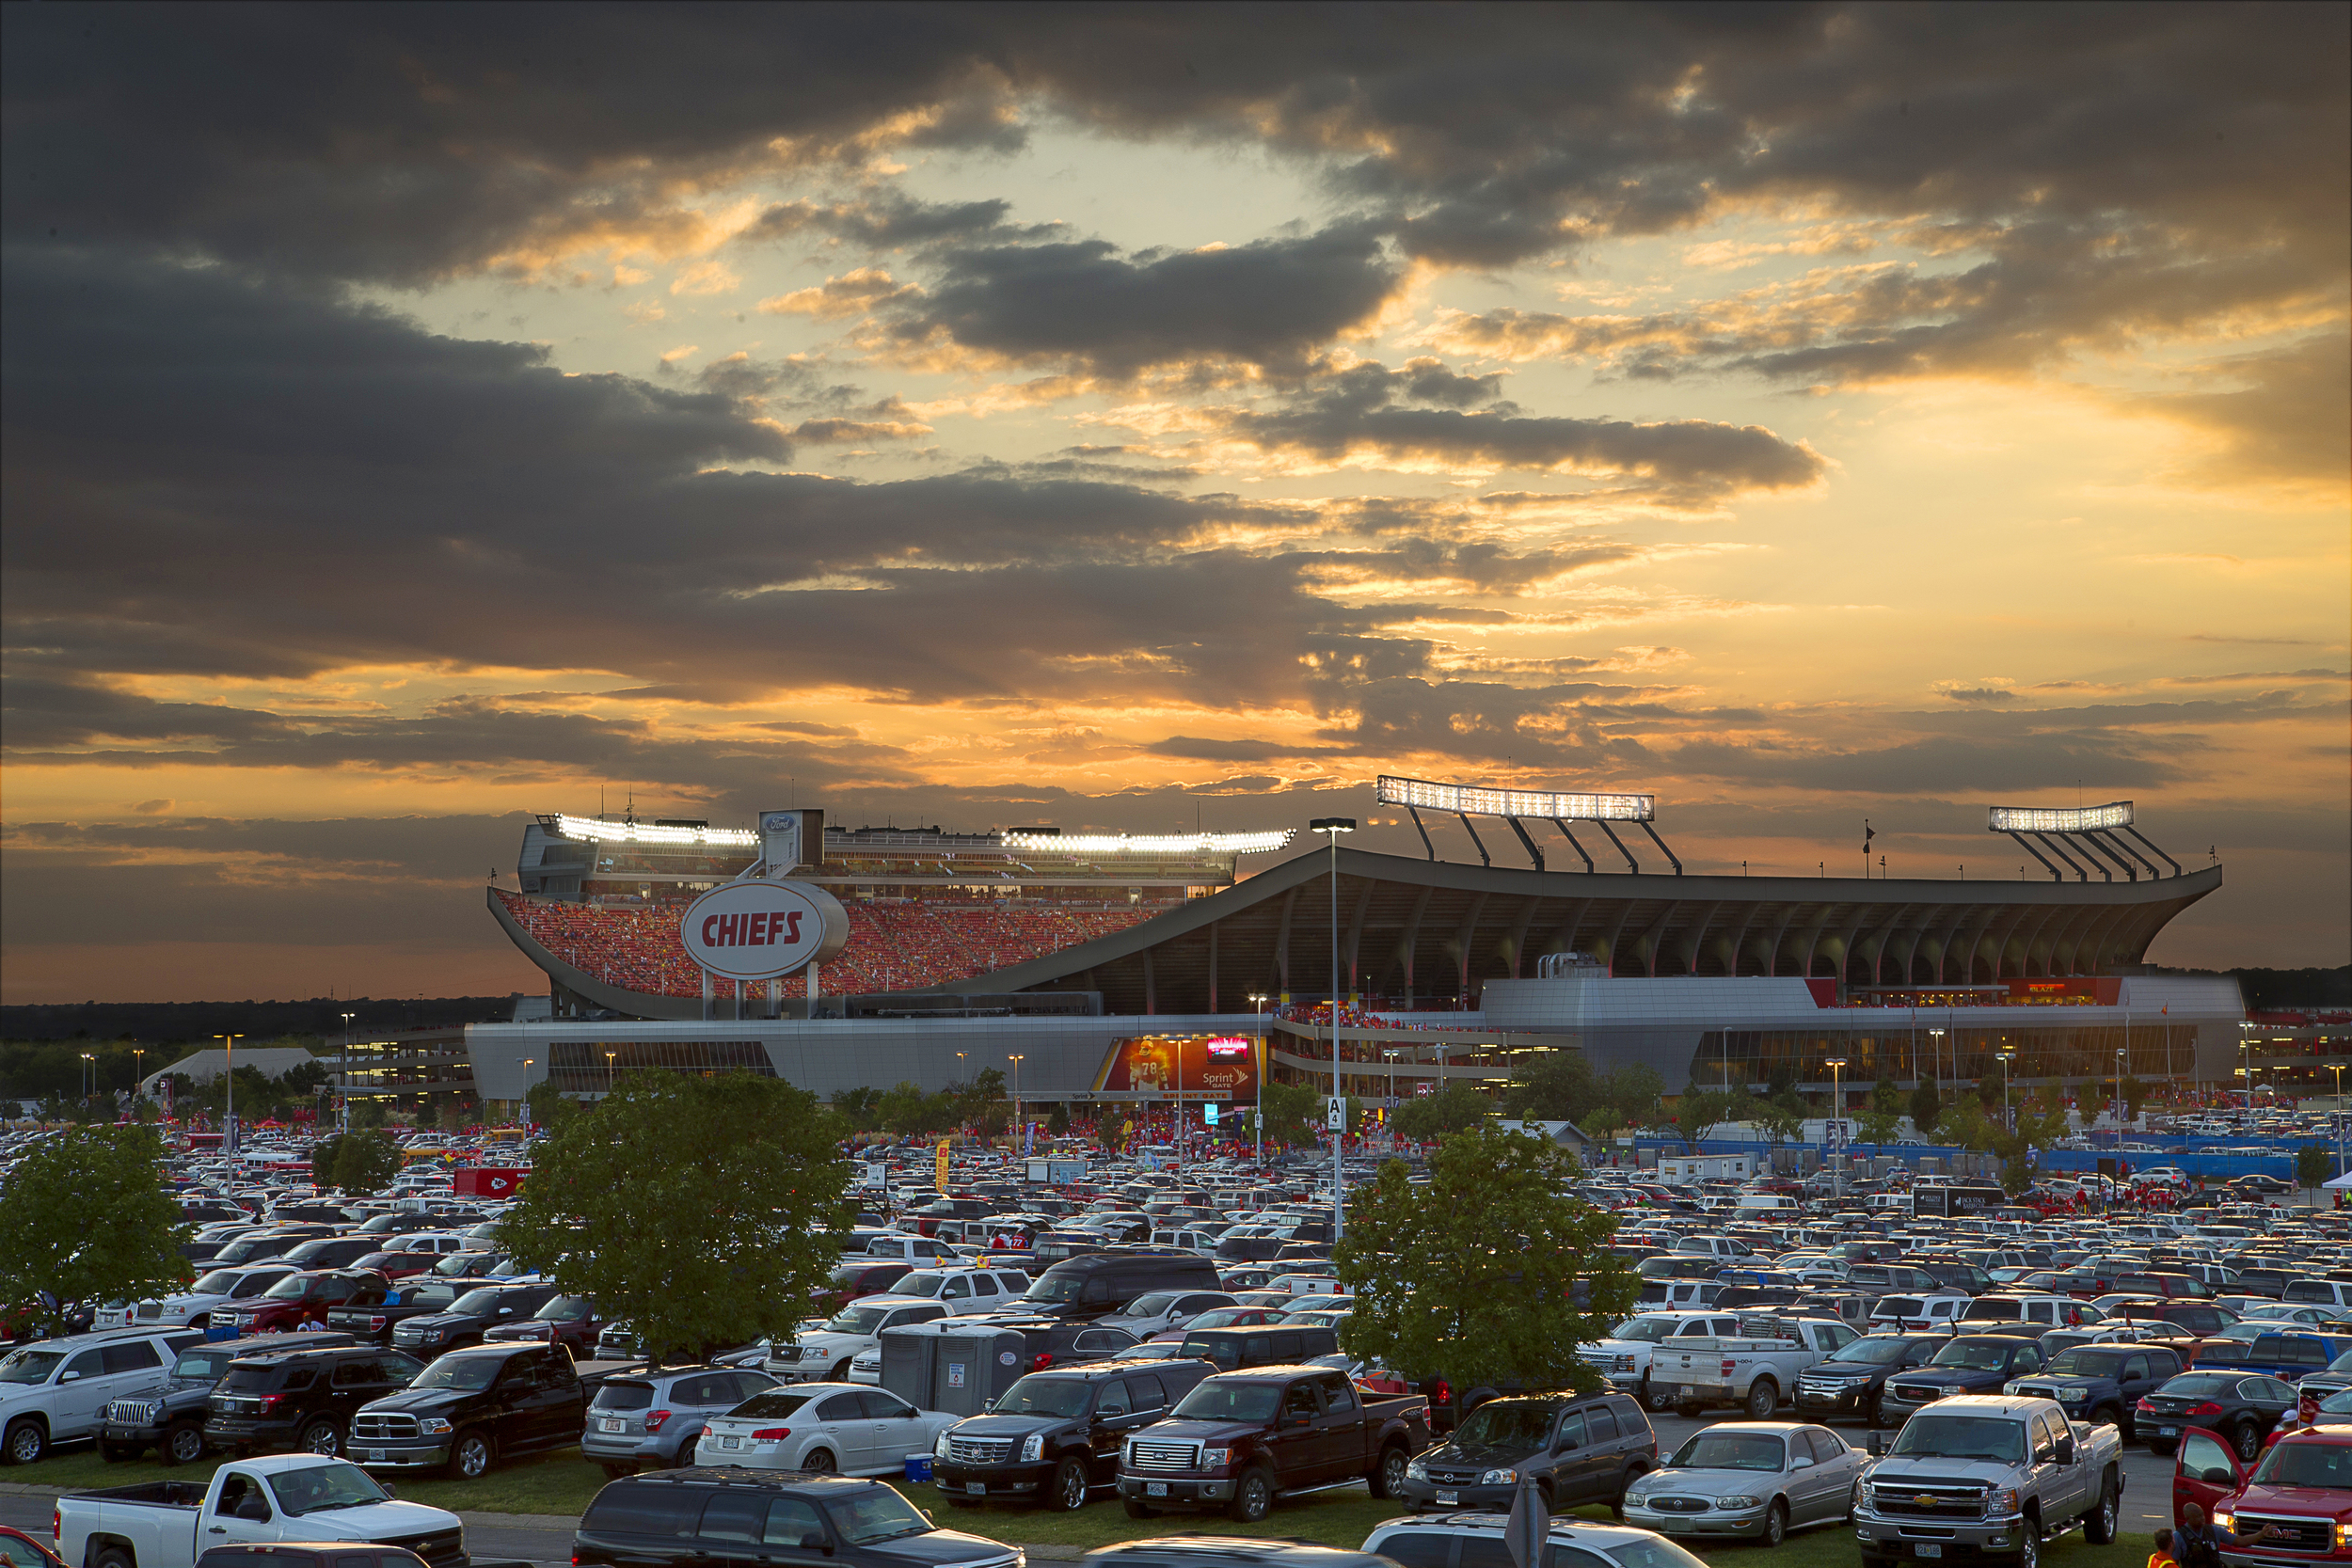 Sunset Stadium-Broncos.jpg